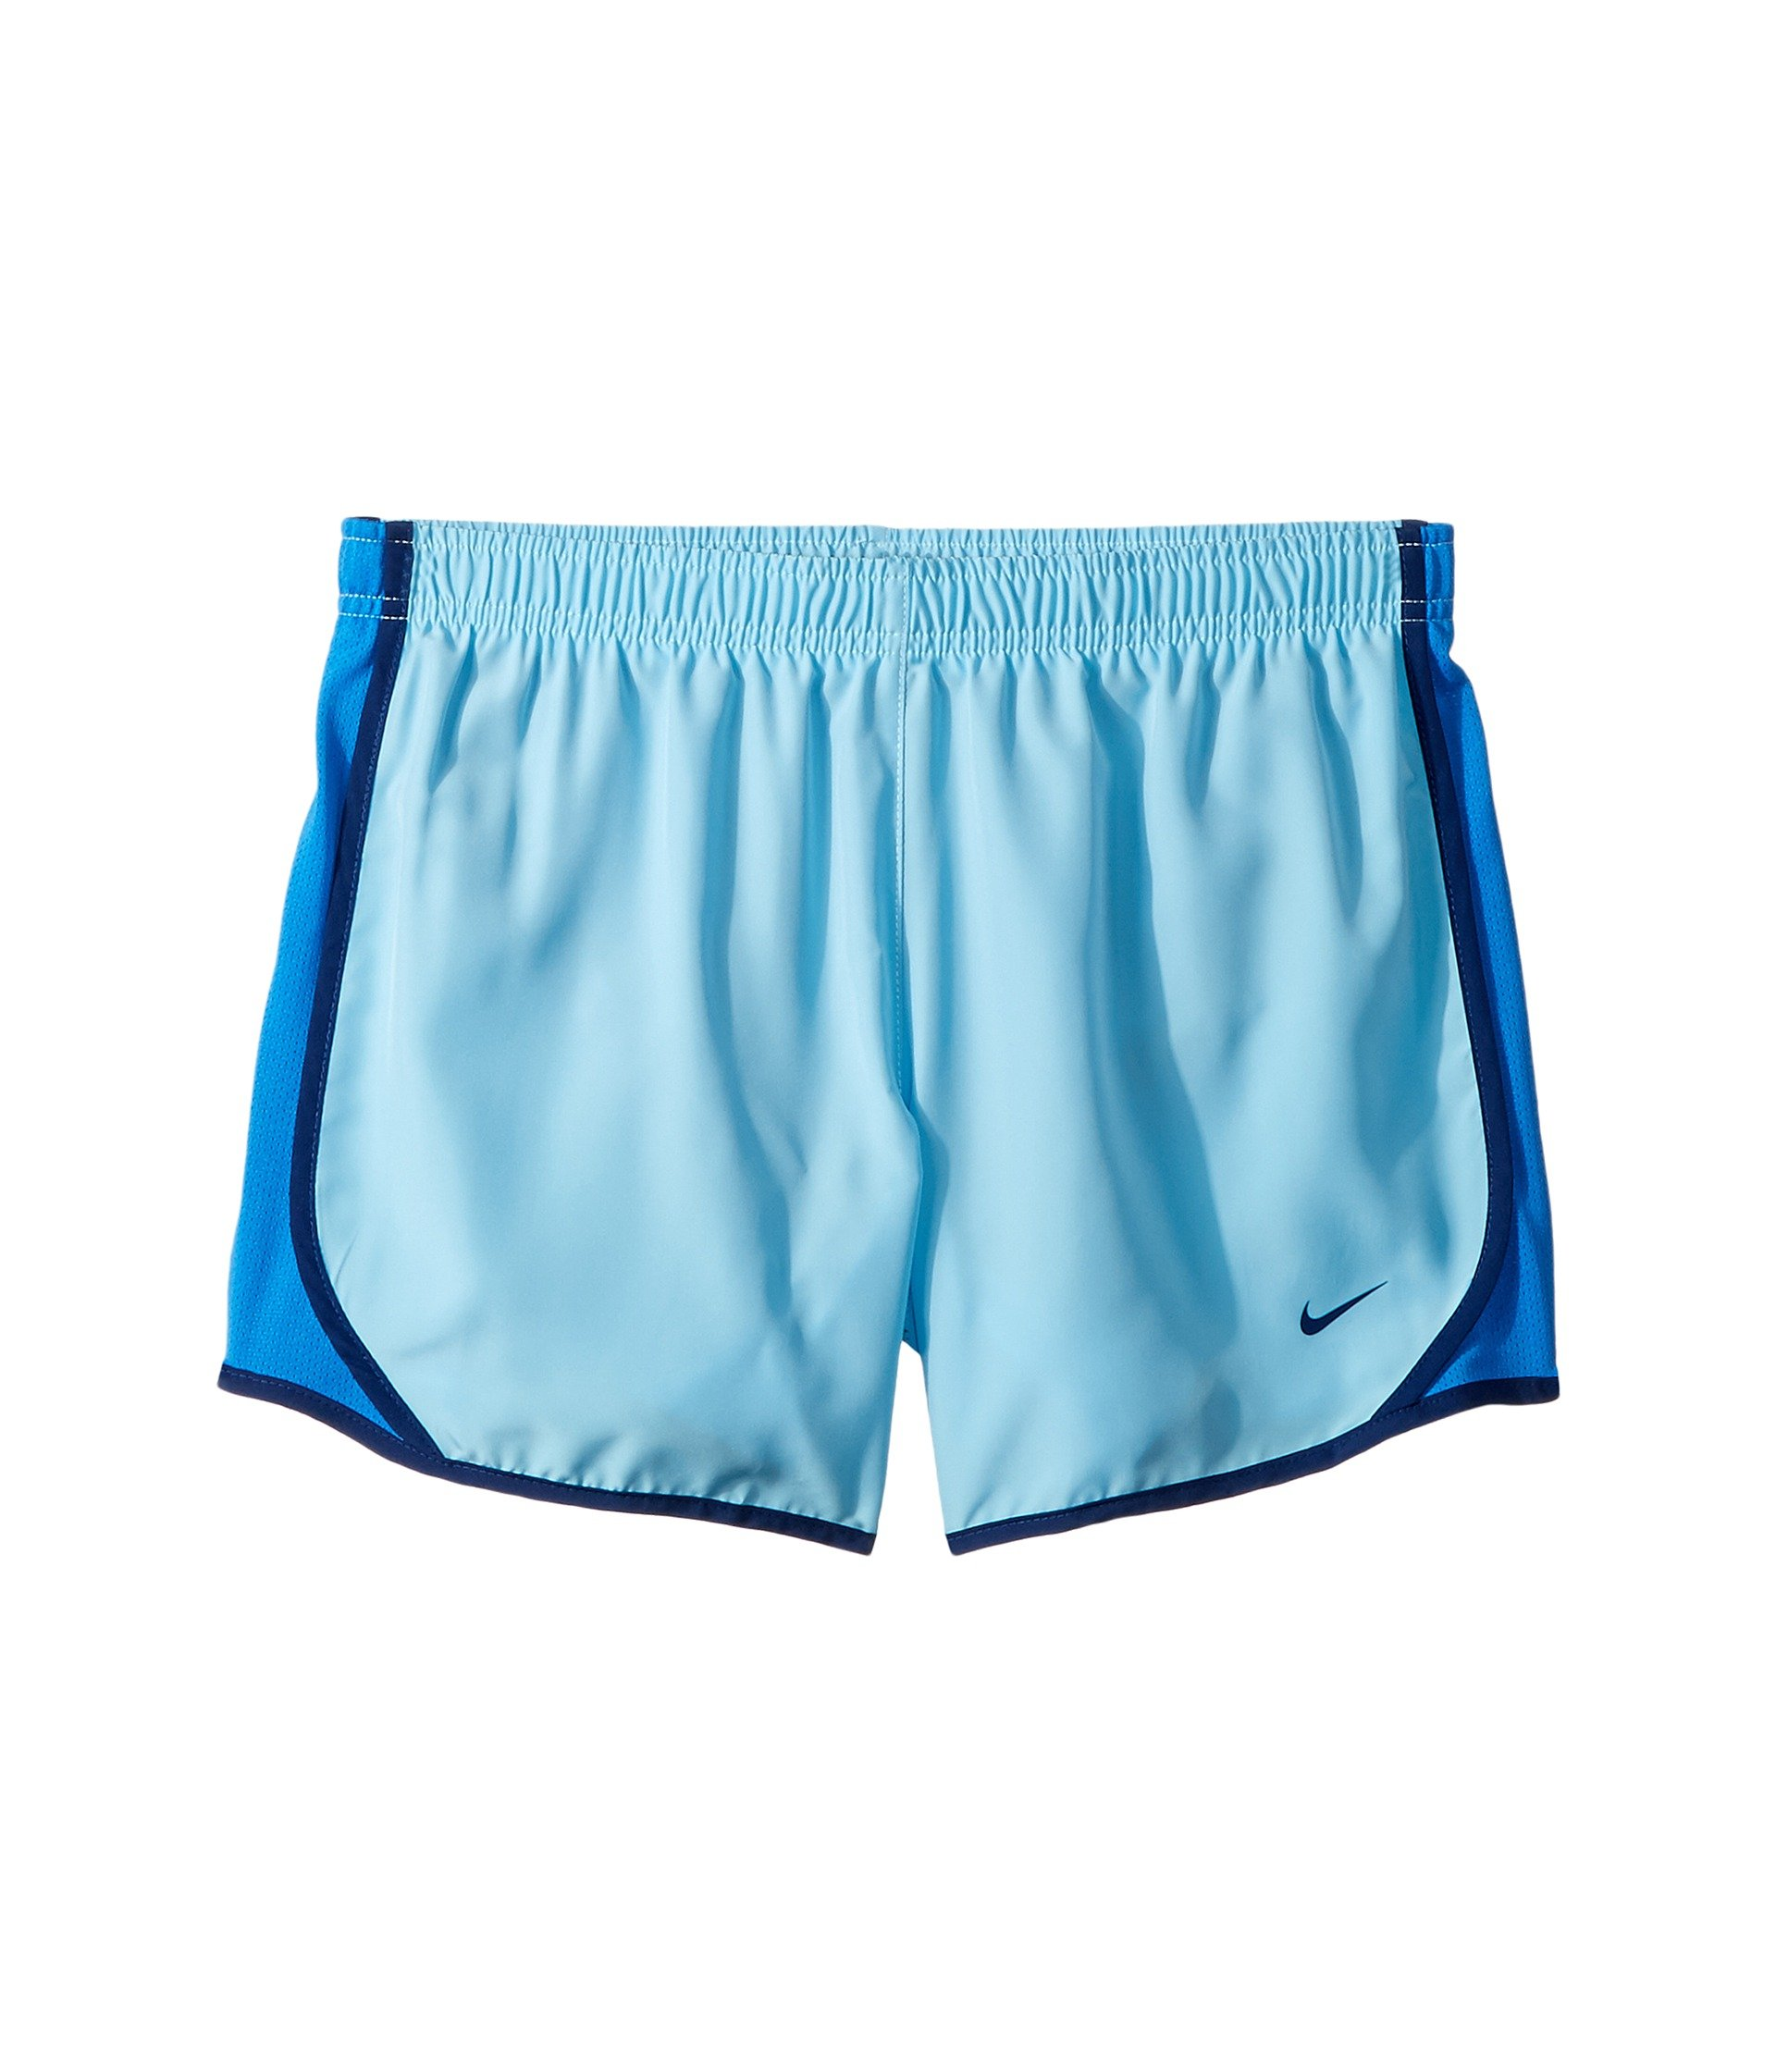 Nike Girl's Dry Tempo Running Shorts (Blue, X-Large) by Nike